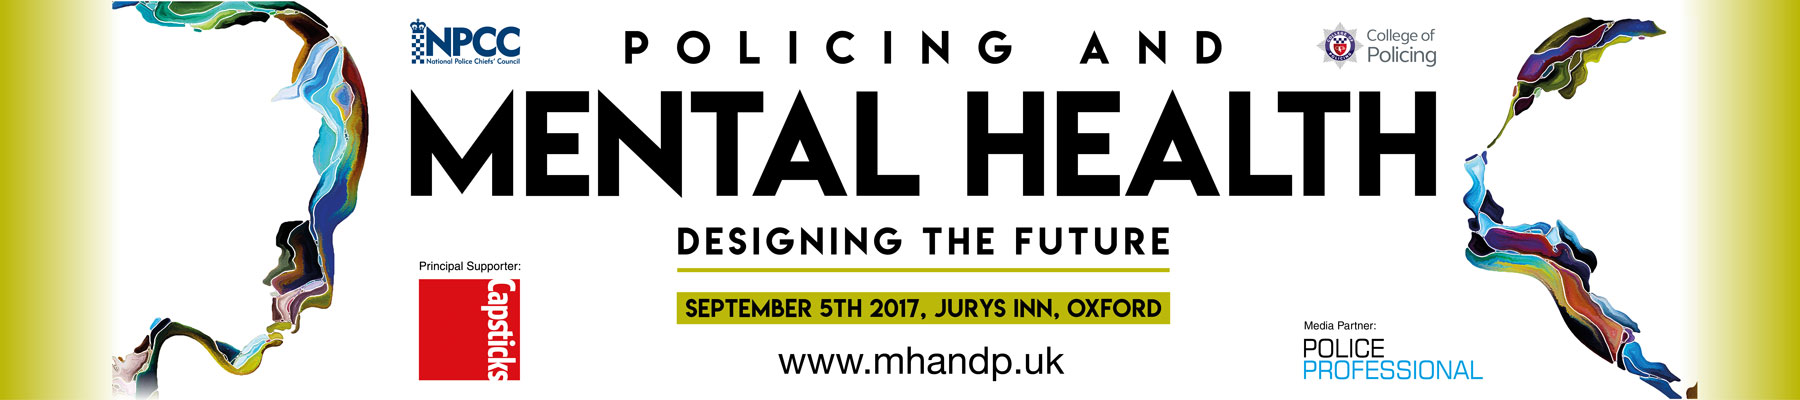 Policing and Mental Health National Conference 2017